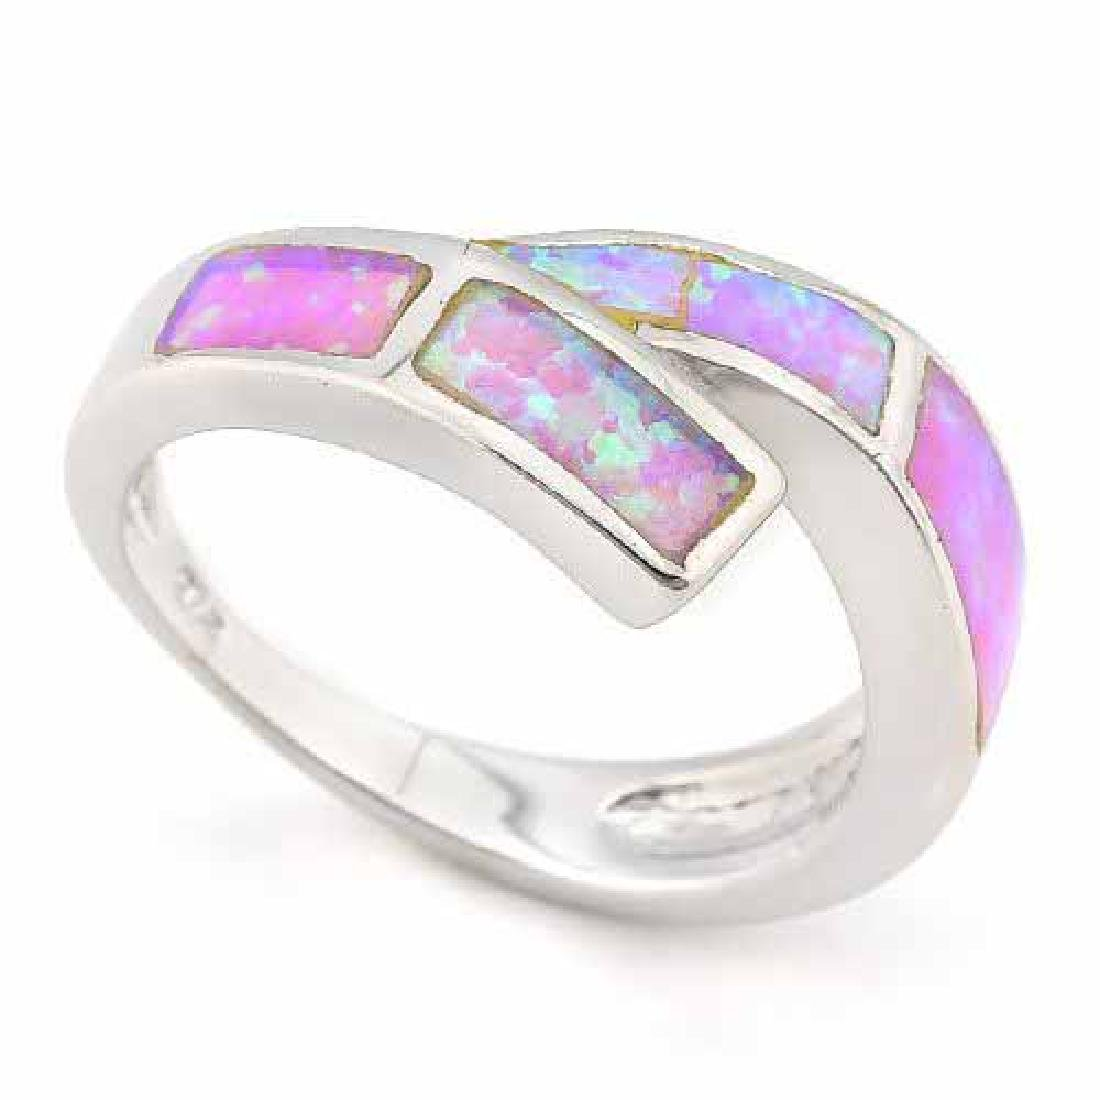 1 1/2 CARAT CREATED FIRE OPAL 925 STERLING SILVER RING